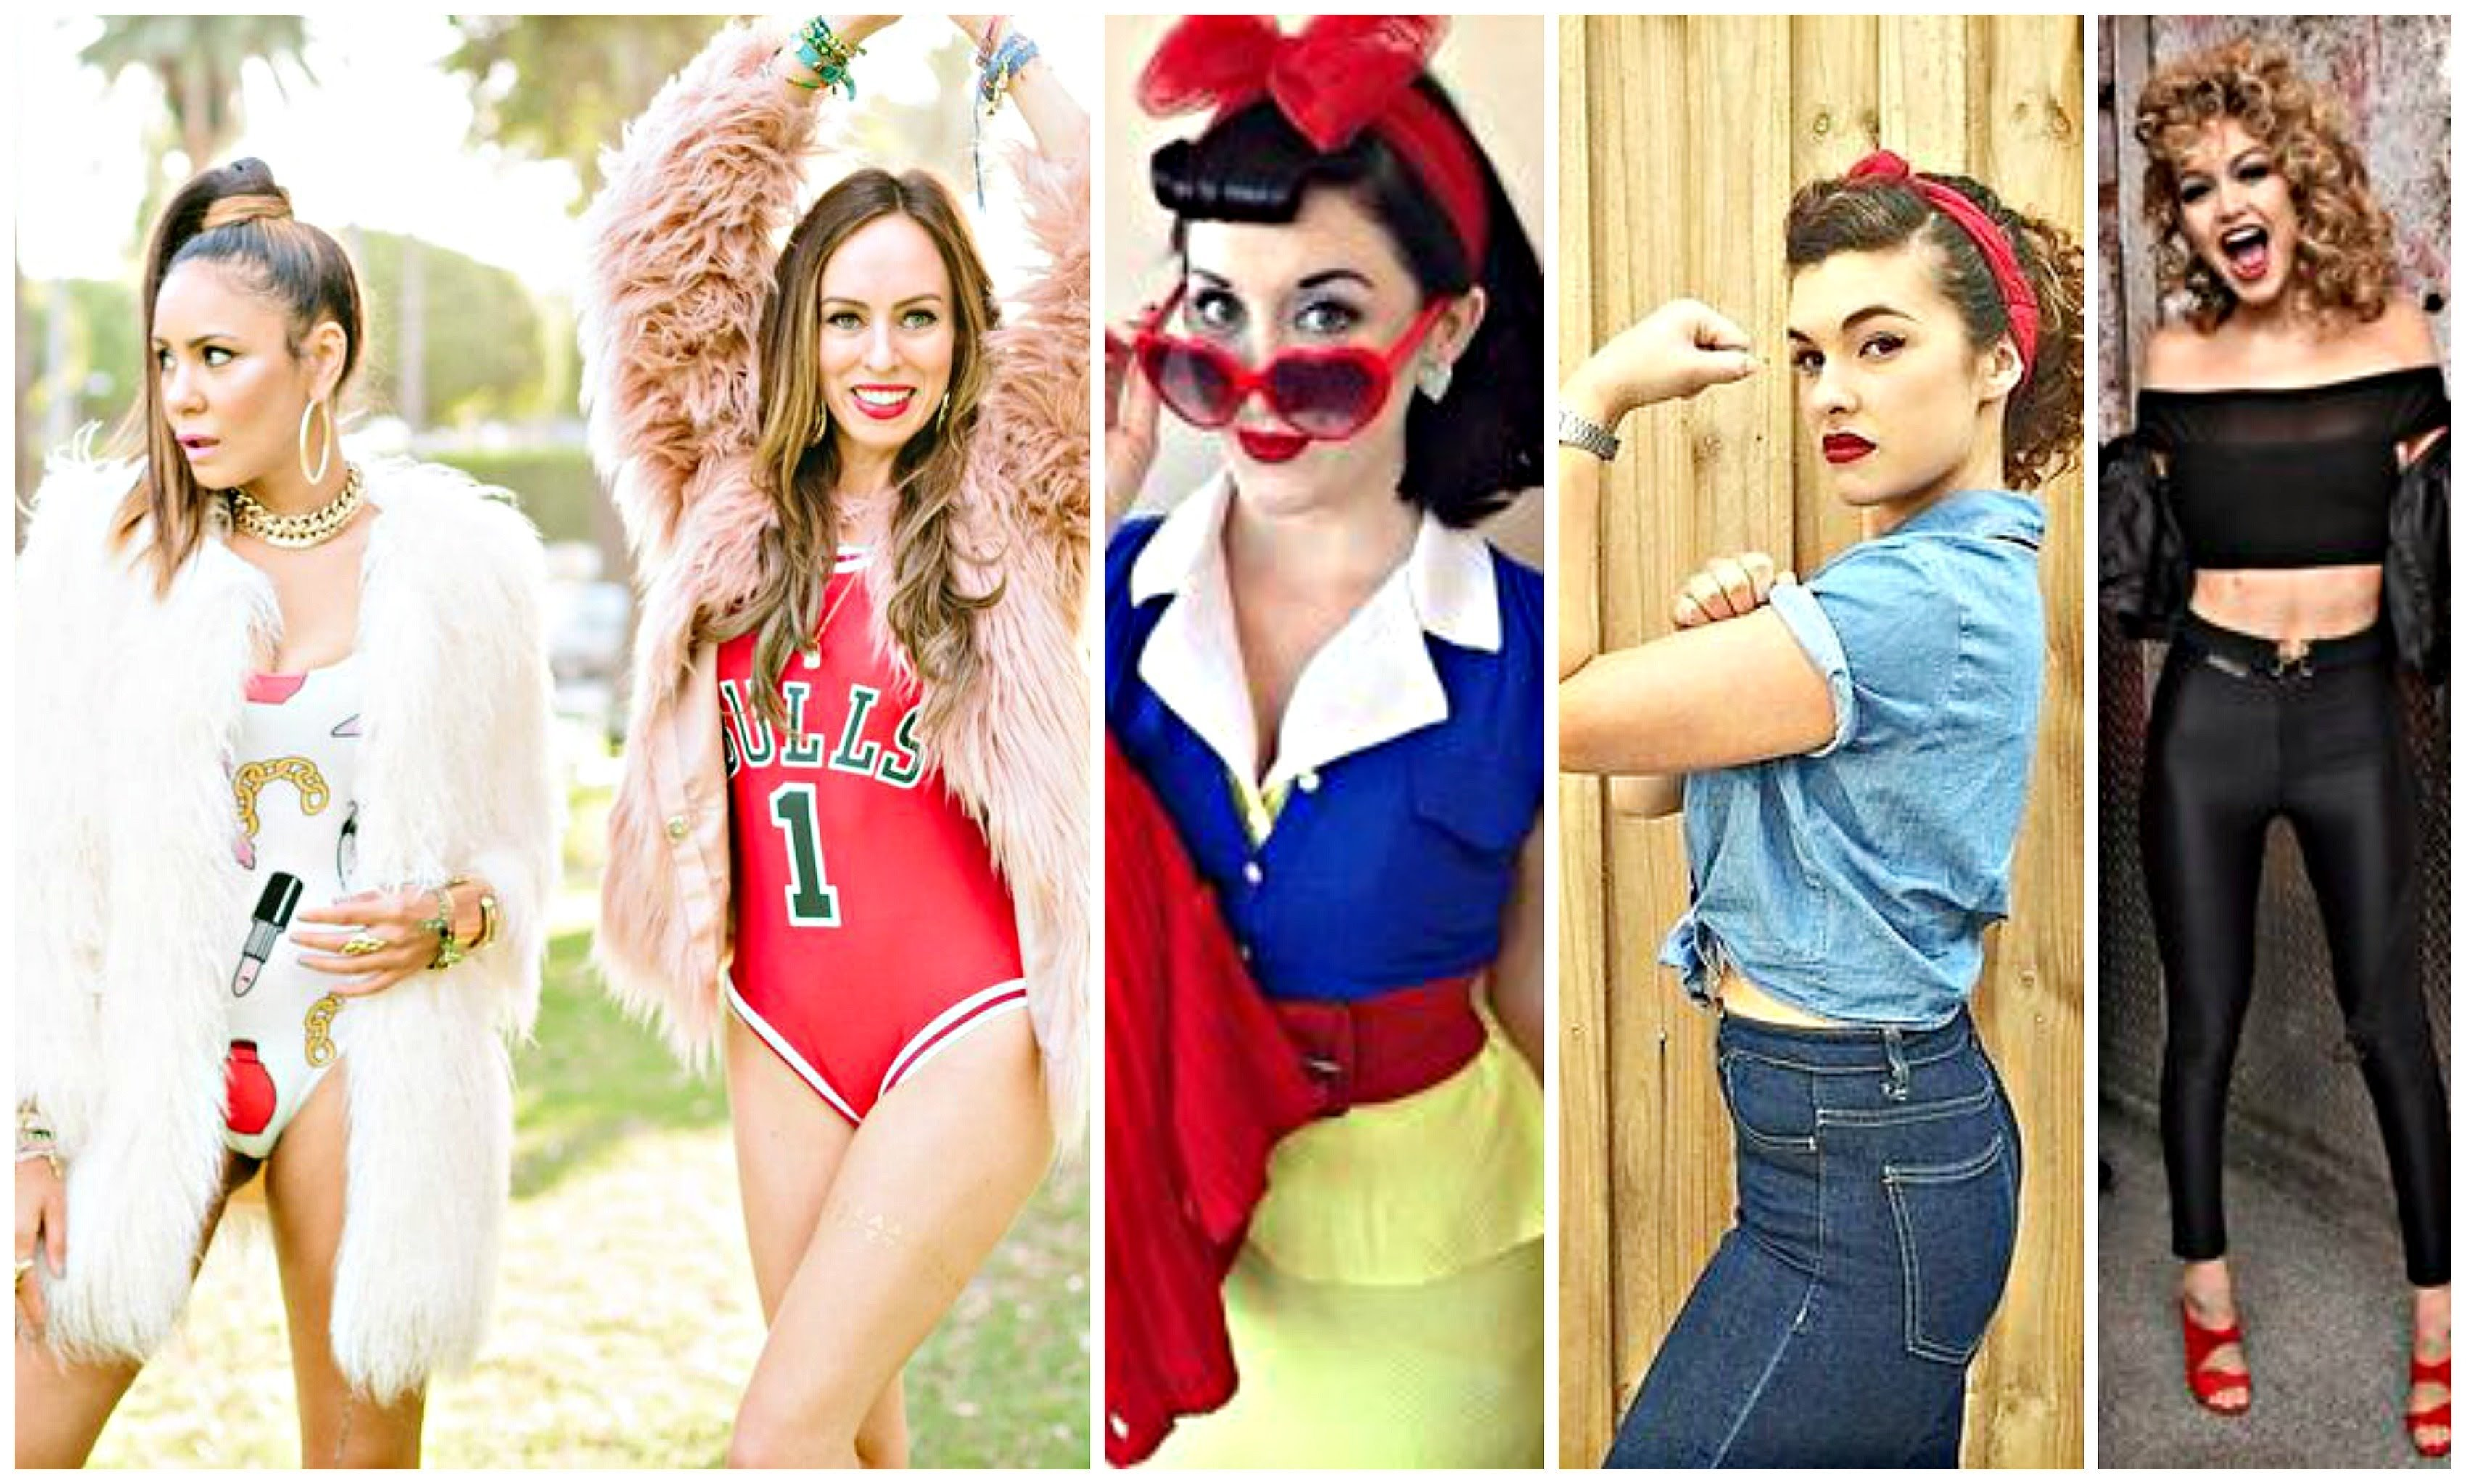 10 Spectacular Ideas For A Halloween Costume top halloween costume ideas for women youtube 10 2020